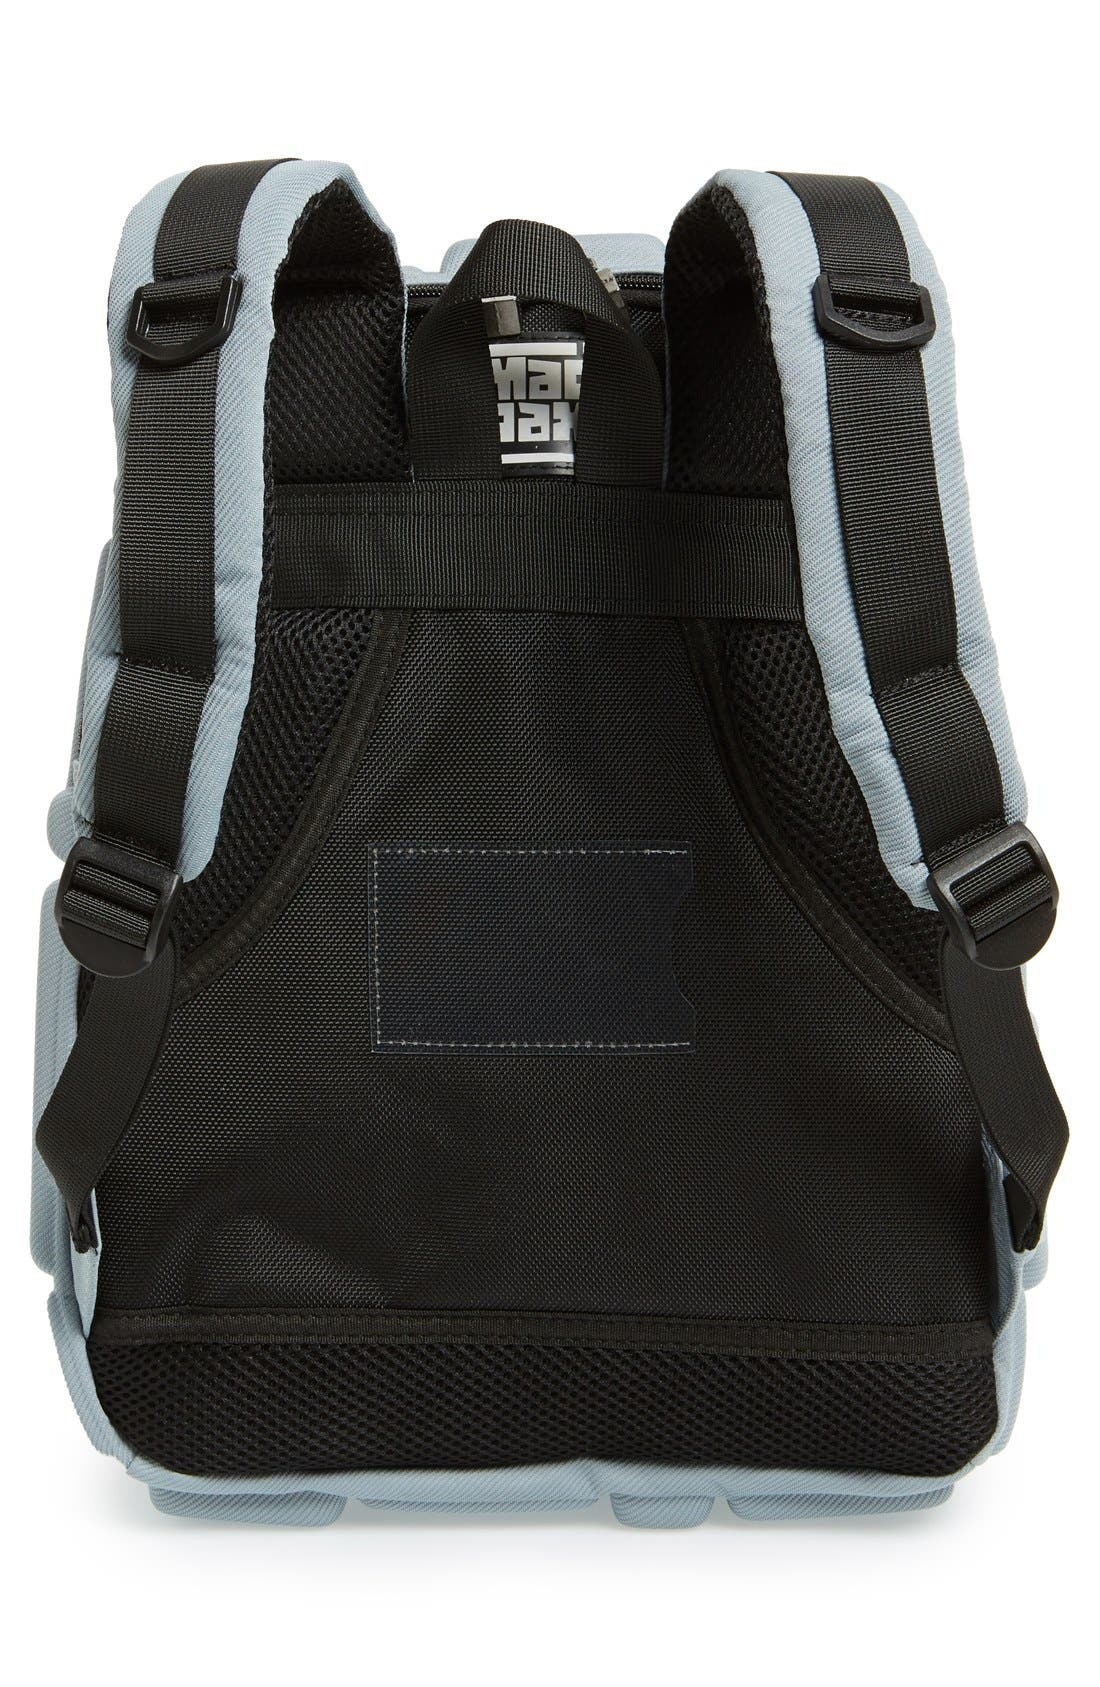 Alternate Image 4  - MadPax 'The Blok' Half-Pack Backpack (Toddler Boys & Little Boys)